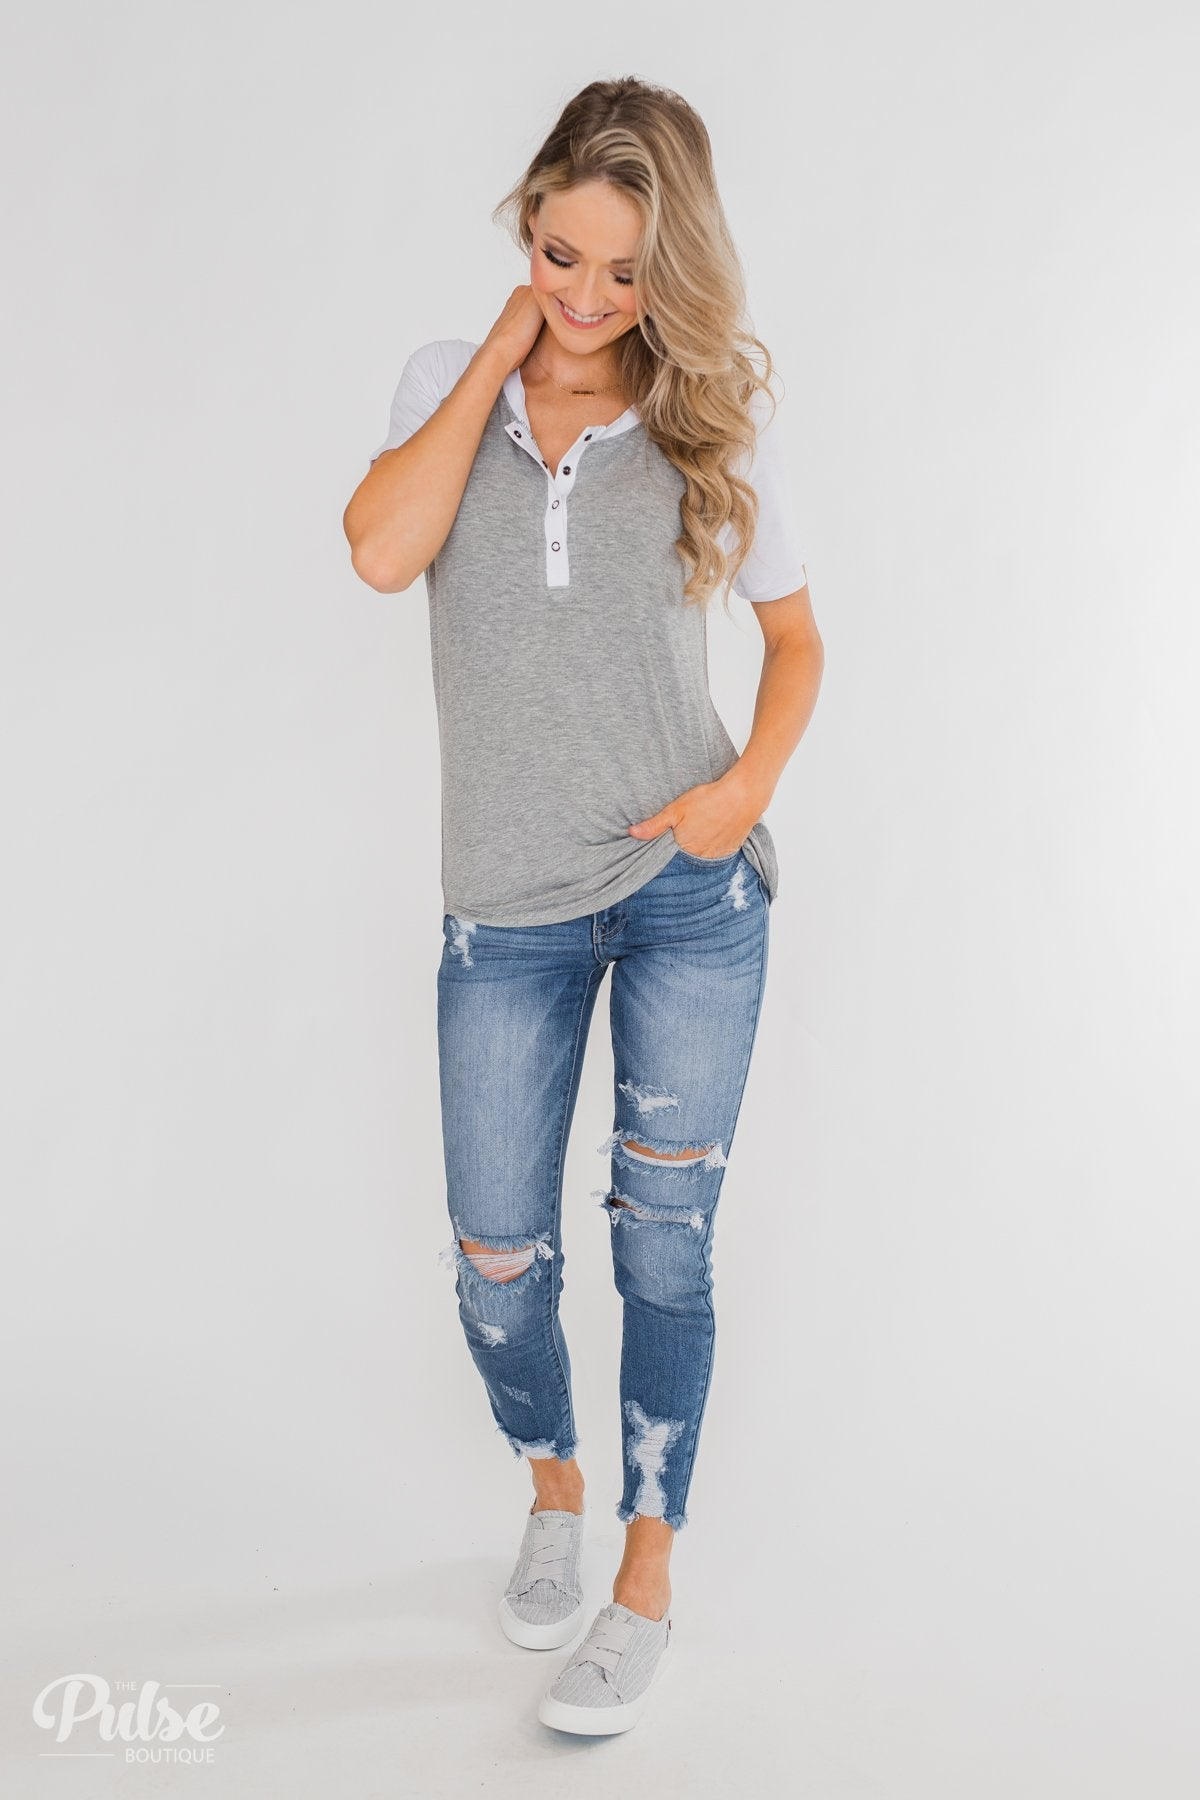 Enchanted by You Short Sleeve Raglan Top- Heather Grey & White